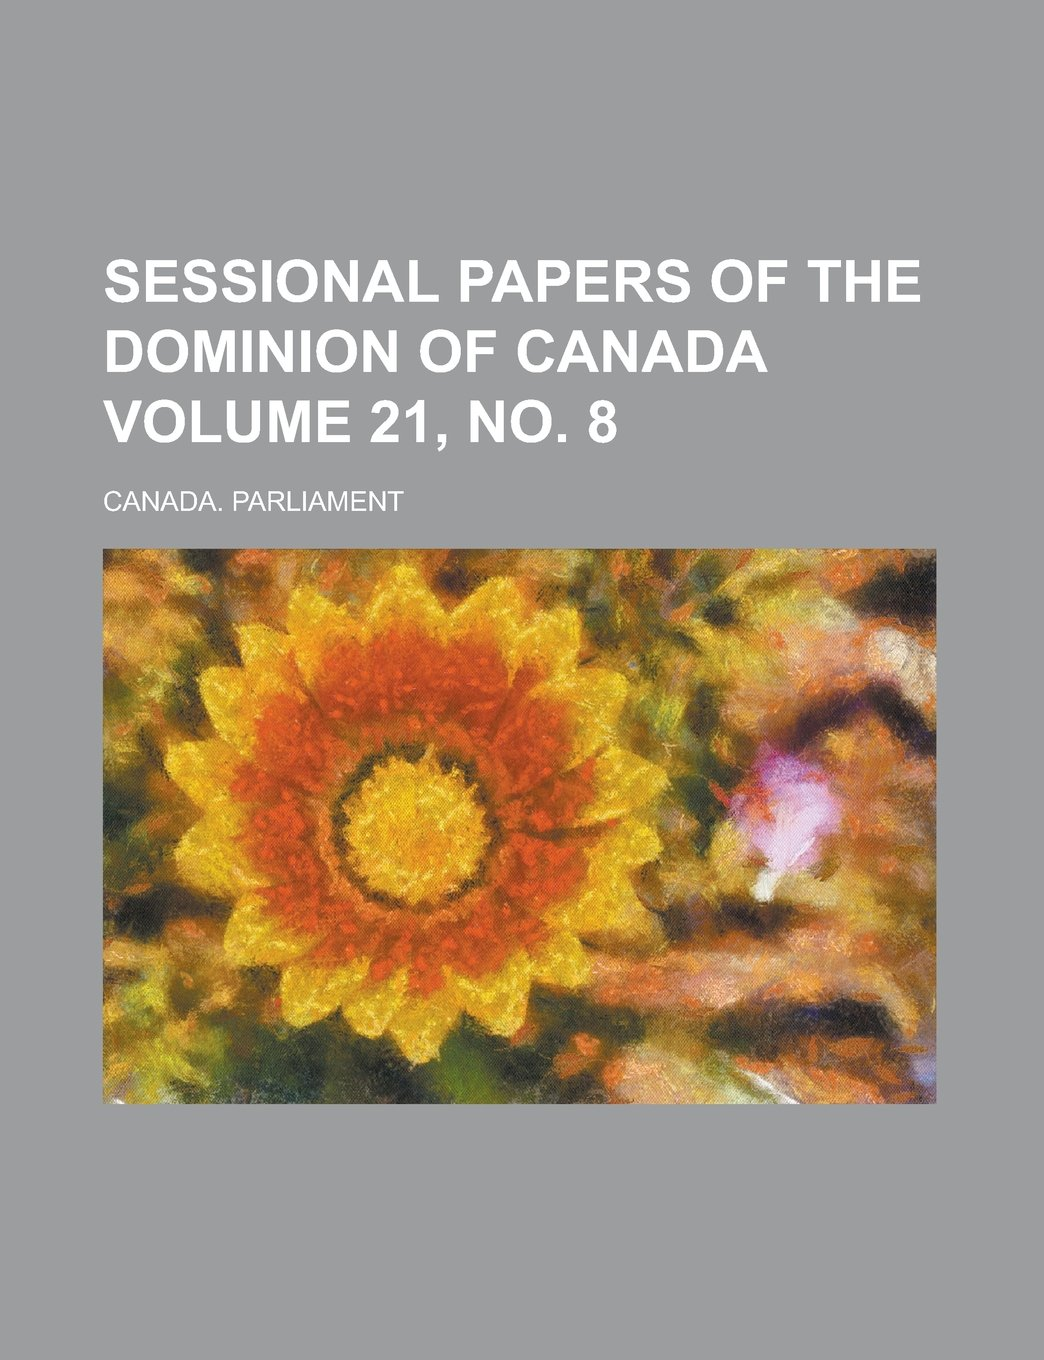 Sessional Papers of the Dominion of Canada Volume 21, no. 8 PDF